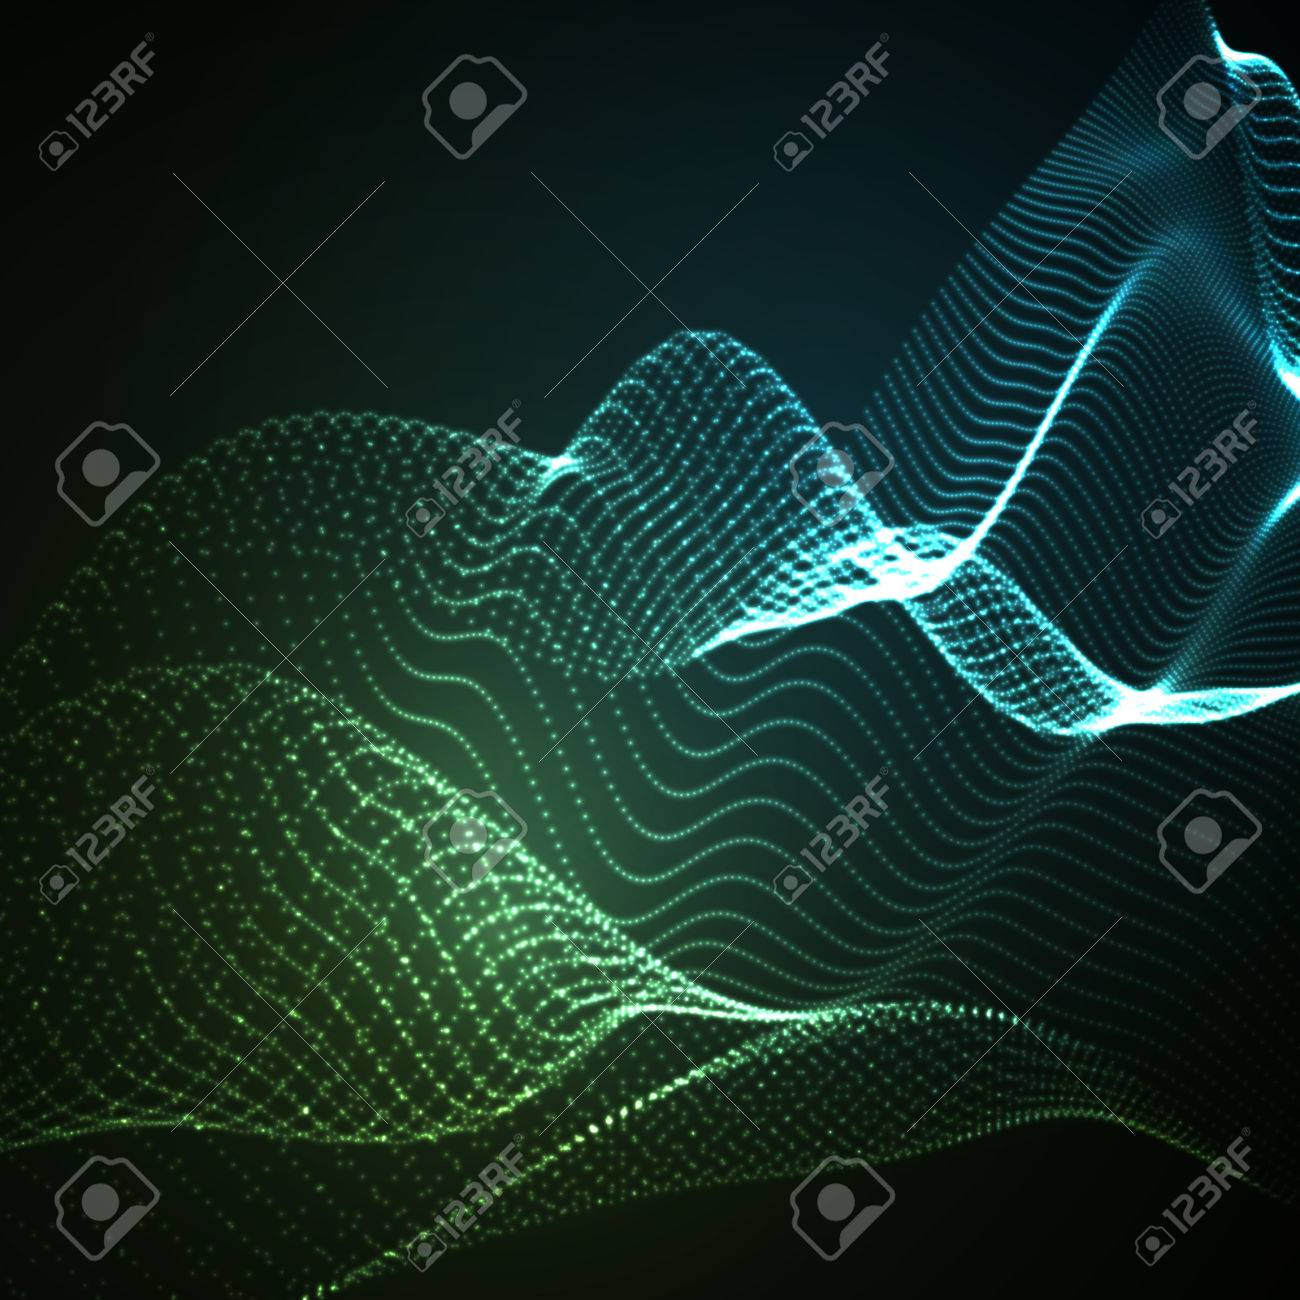 3D illuminated abstract digital wave of glowing particles and wireframe. Neon Sign. Futuristic vector illustration. HUD element. Technology concept. Abstract background - 53133424